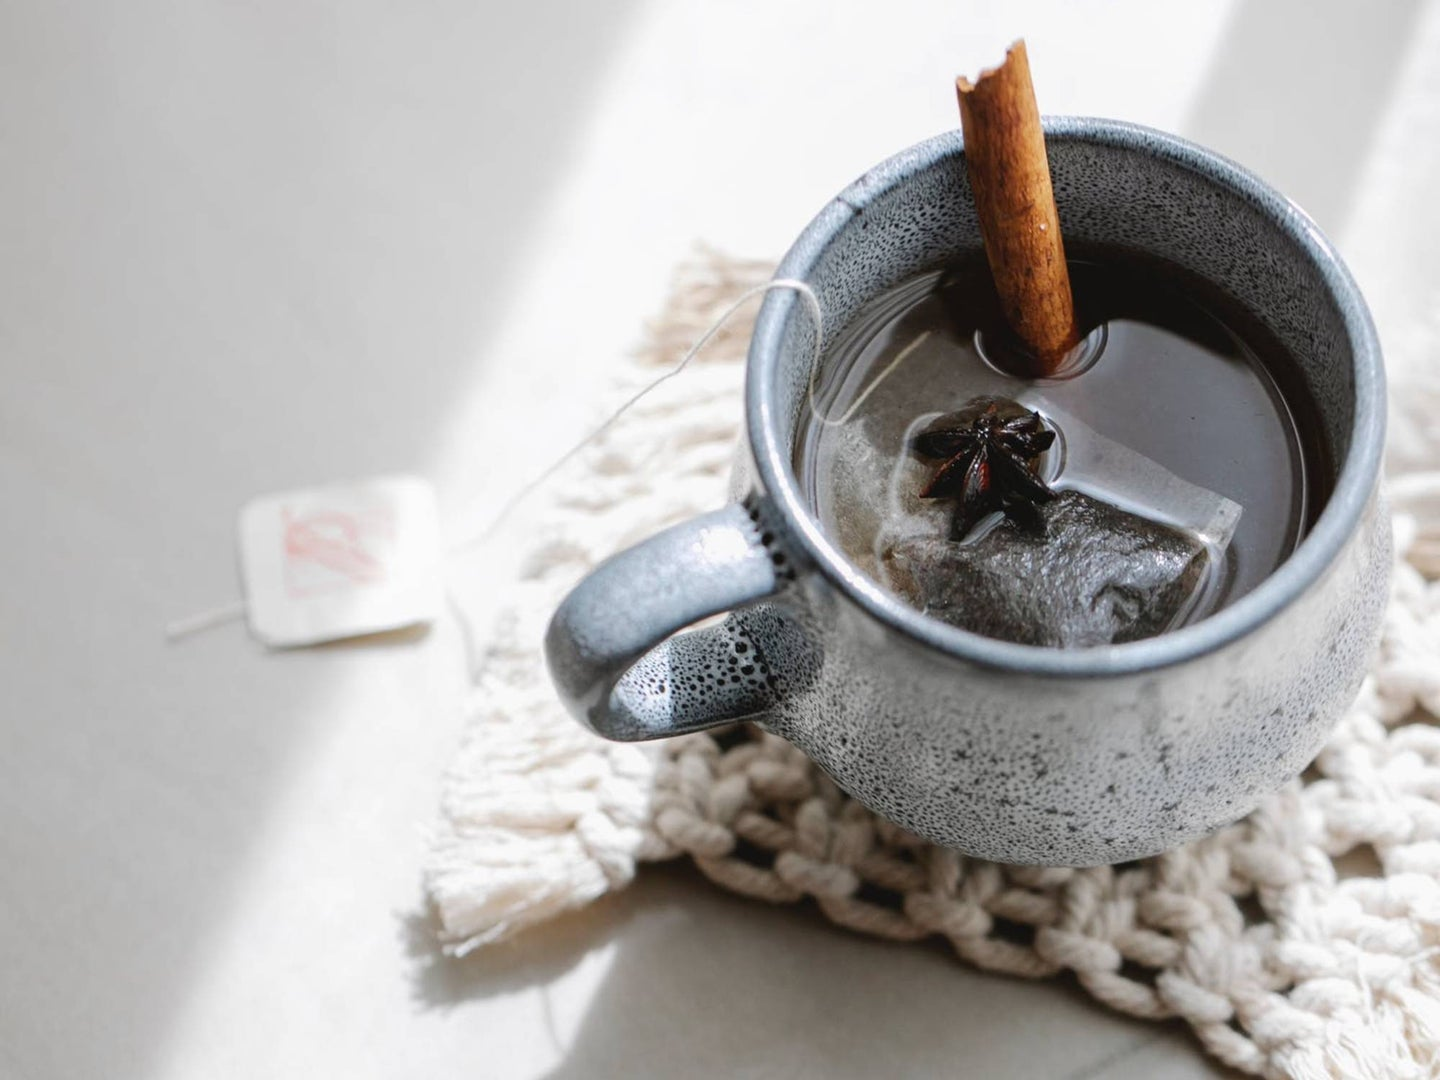 A cup of tea with a cinnamon stick in it